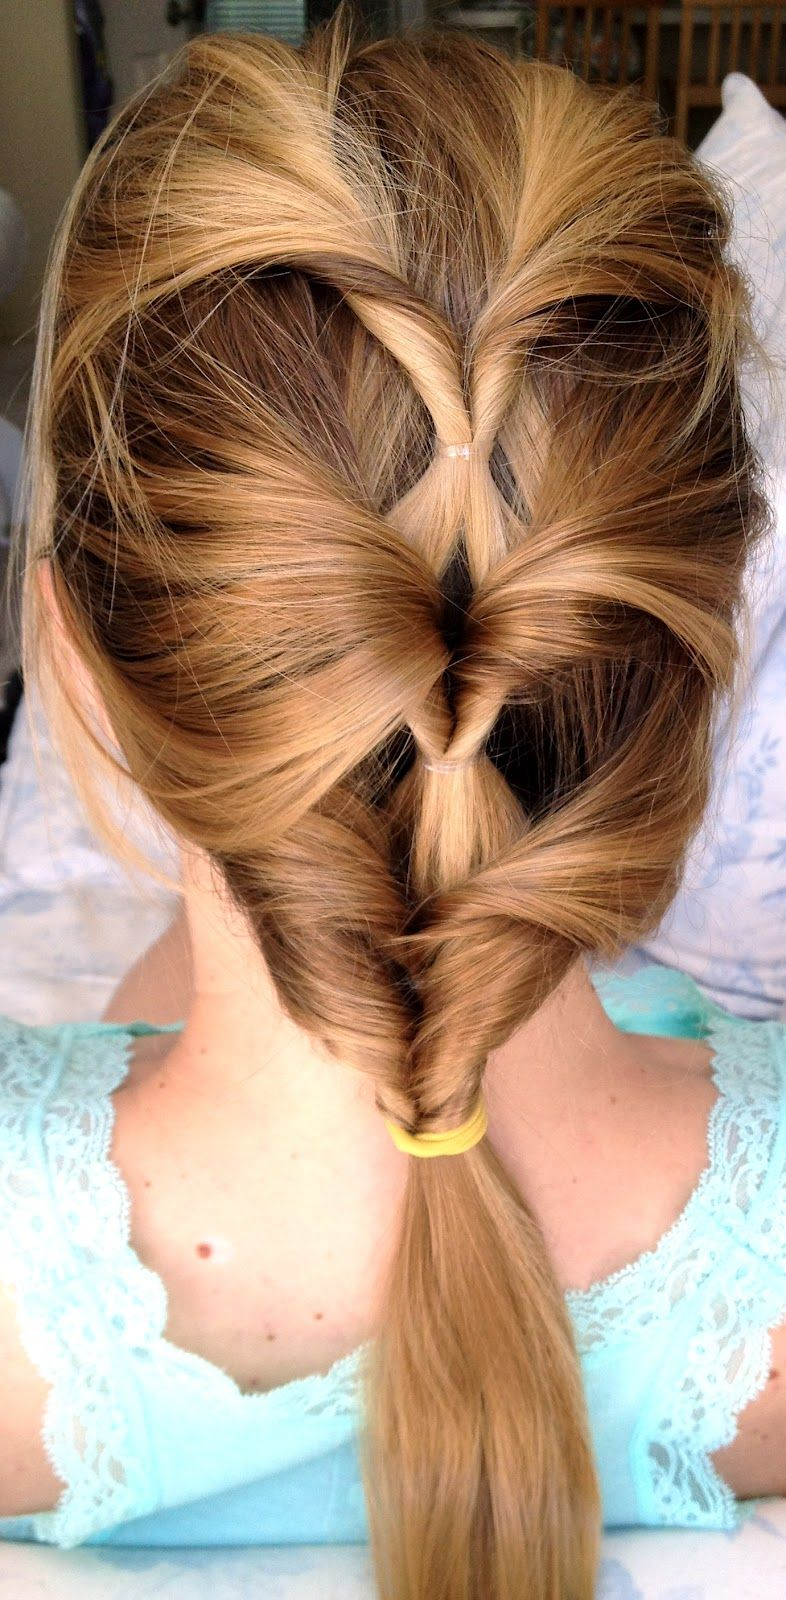 Pin by irene seiwert on beauty pinterest pony twisted braid and